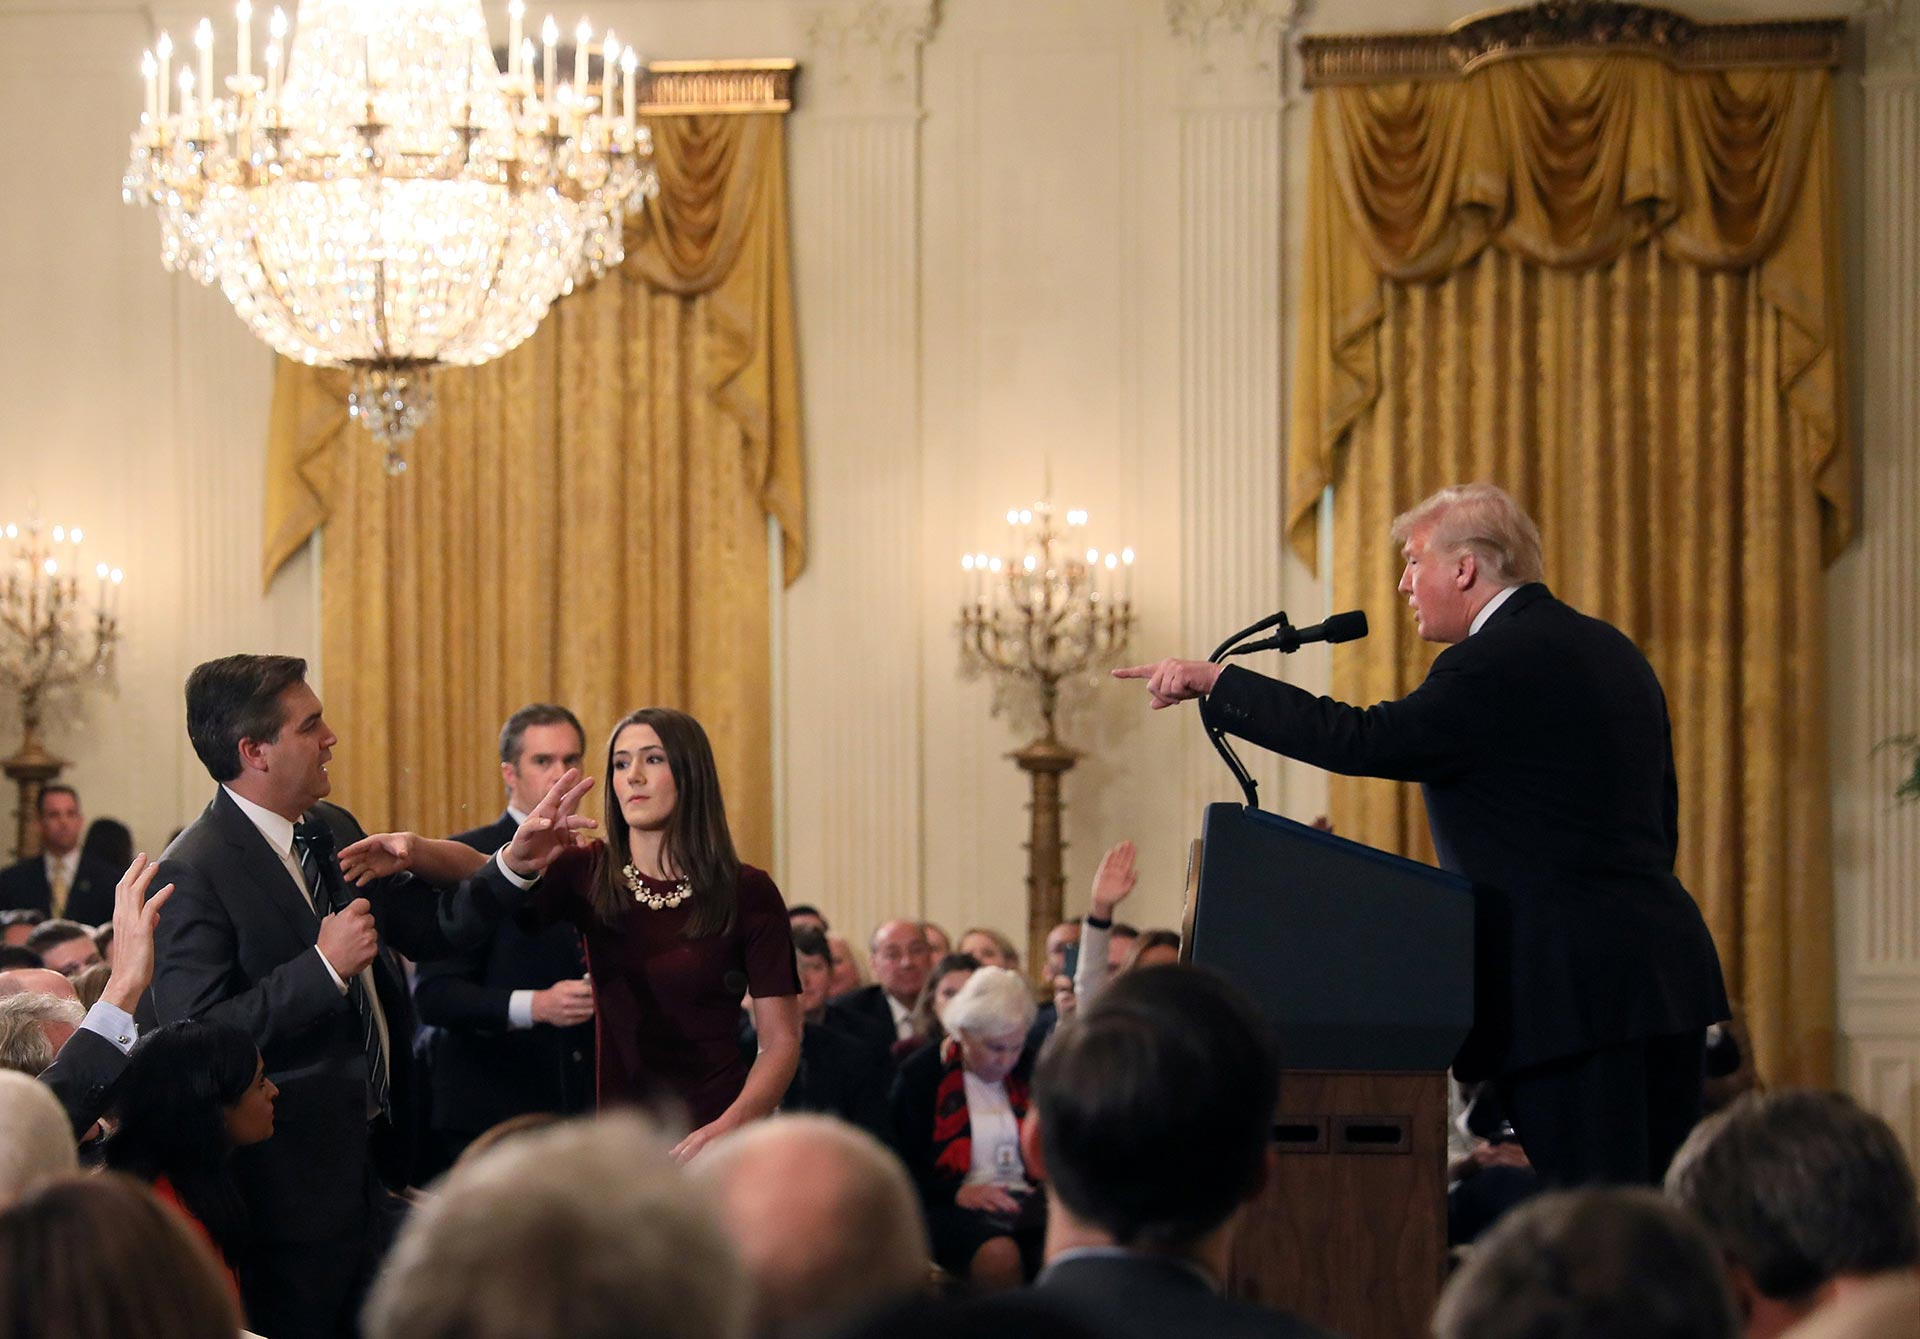 A White House intern reaches for the microphone held by CNN's Jim Acosta